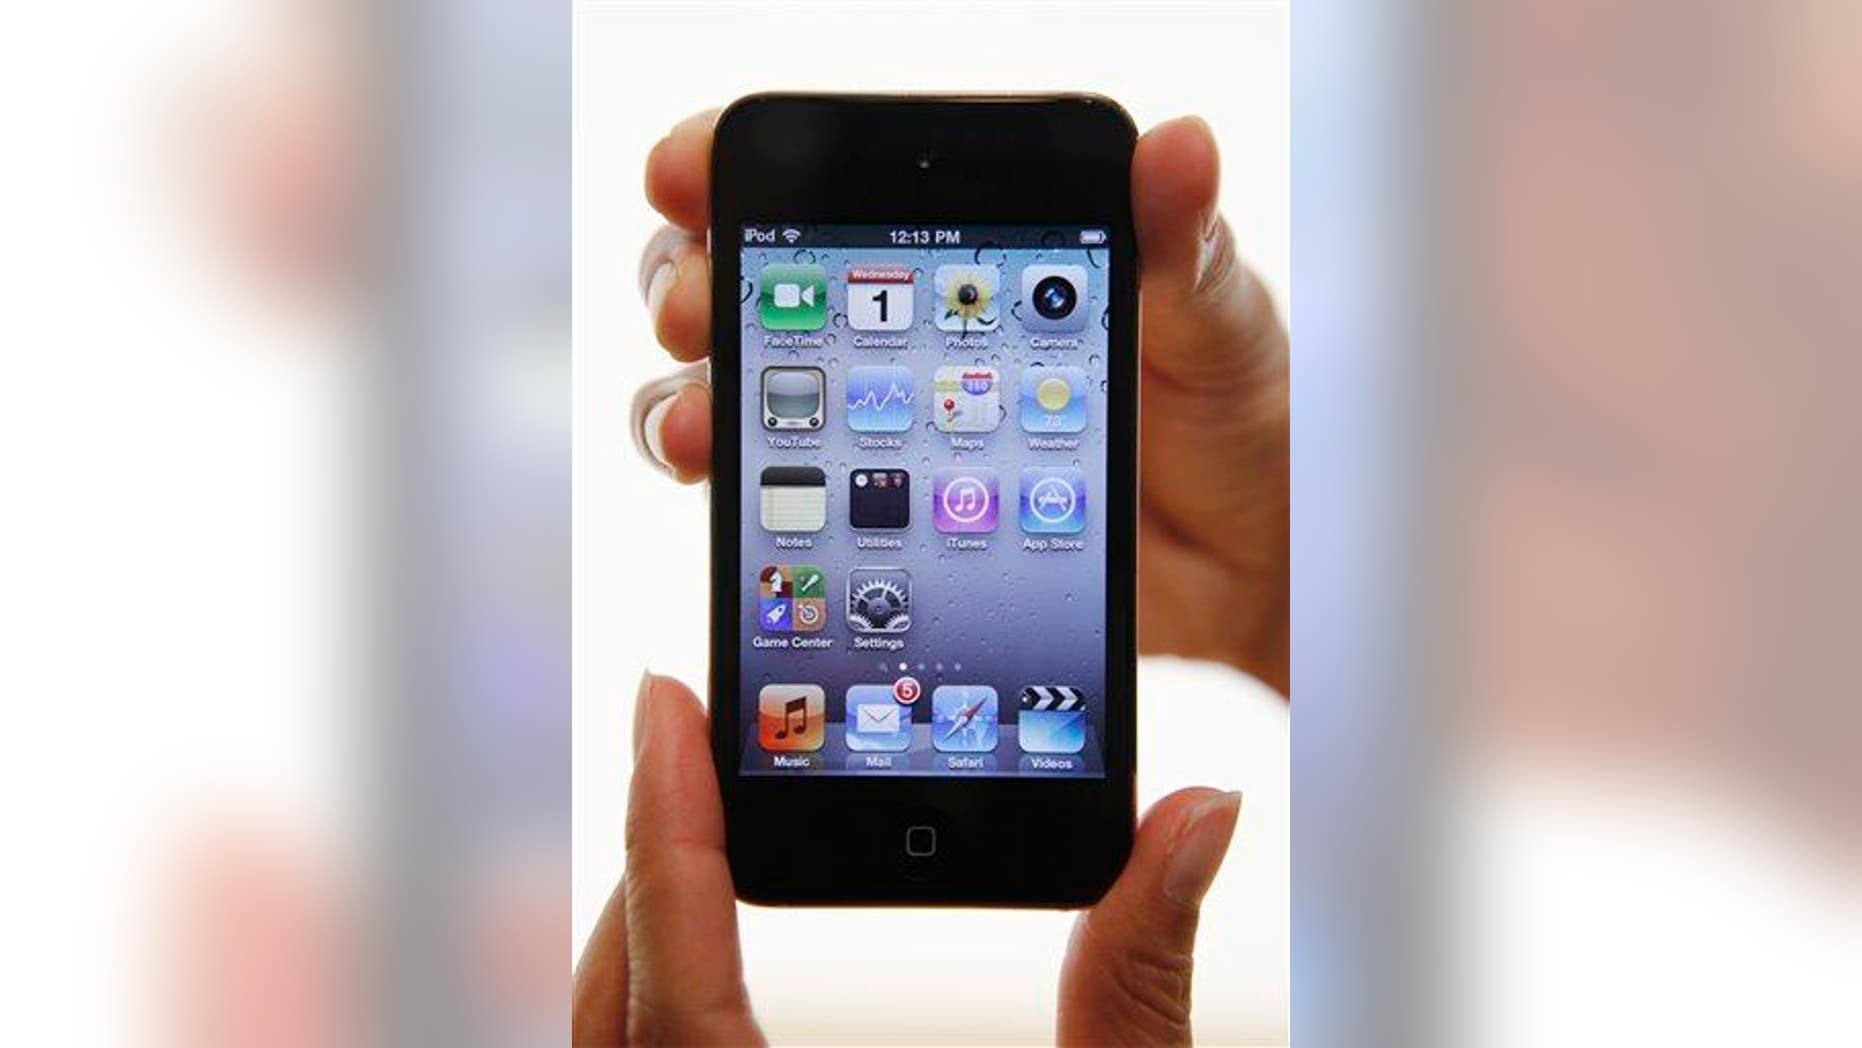 An iPod Touch helped authorities find the missing girl.